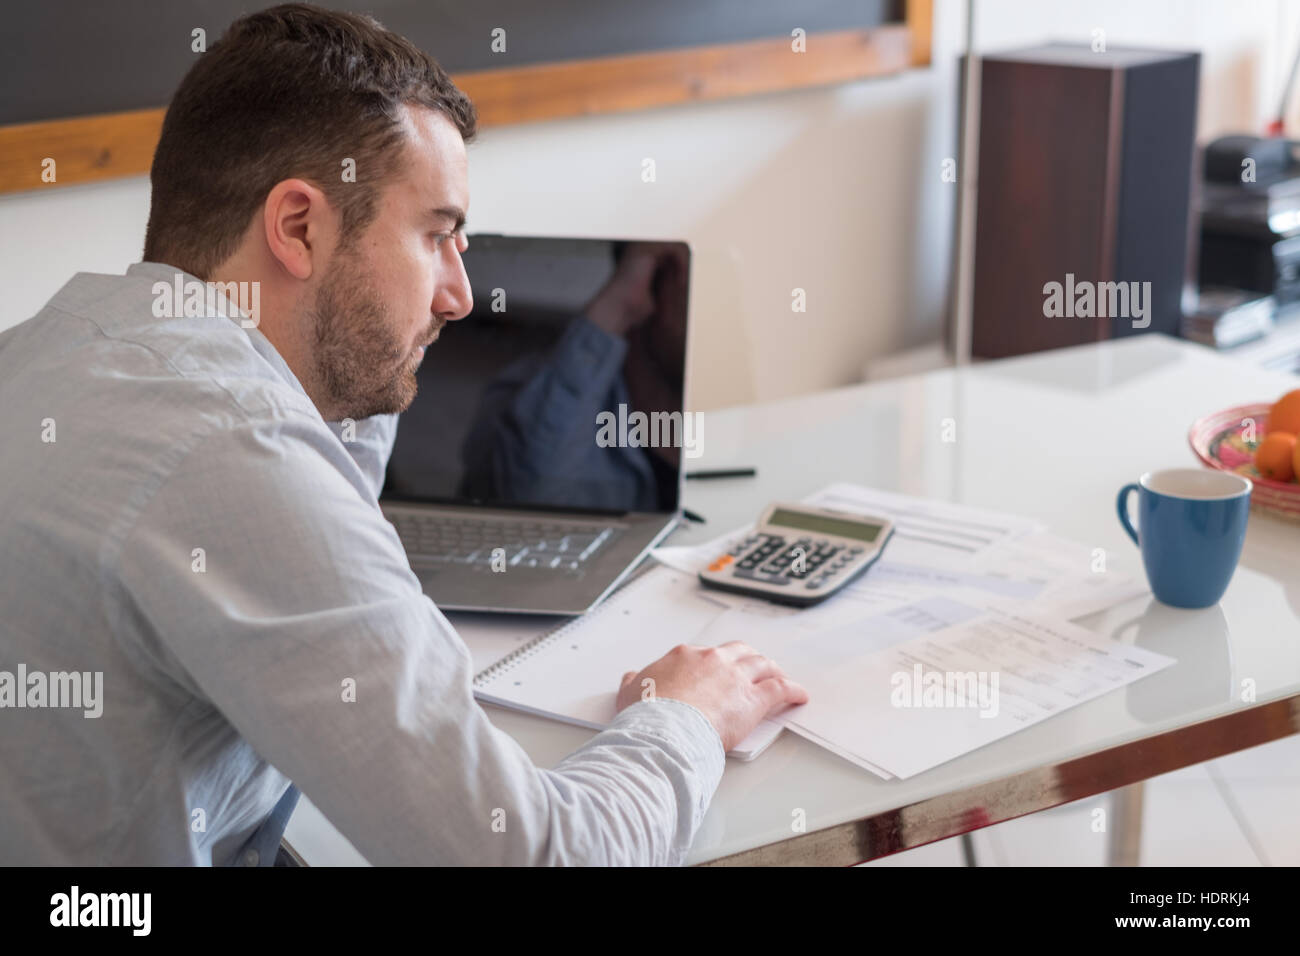 Frustrated man calculating bills and tax  expense - Stock Image